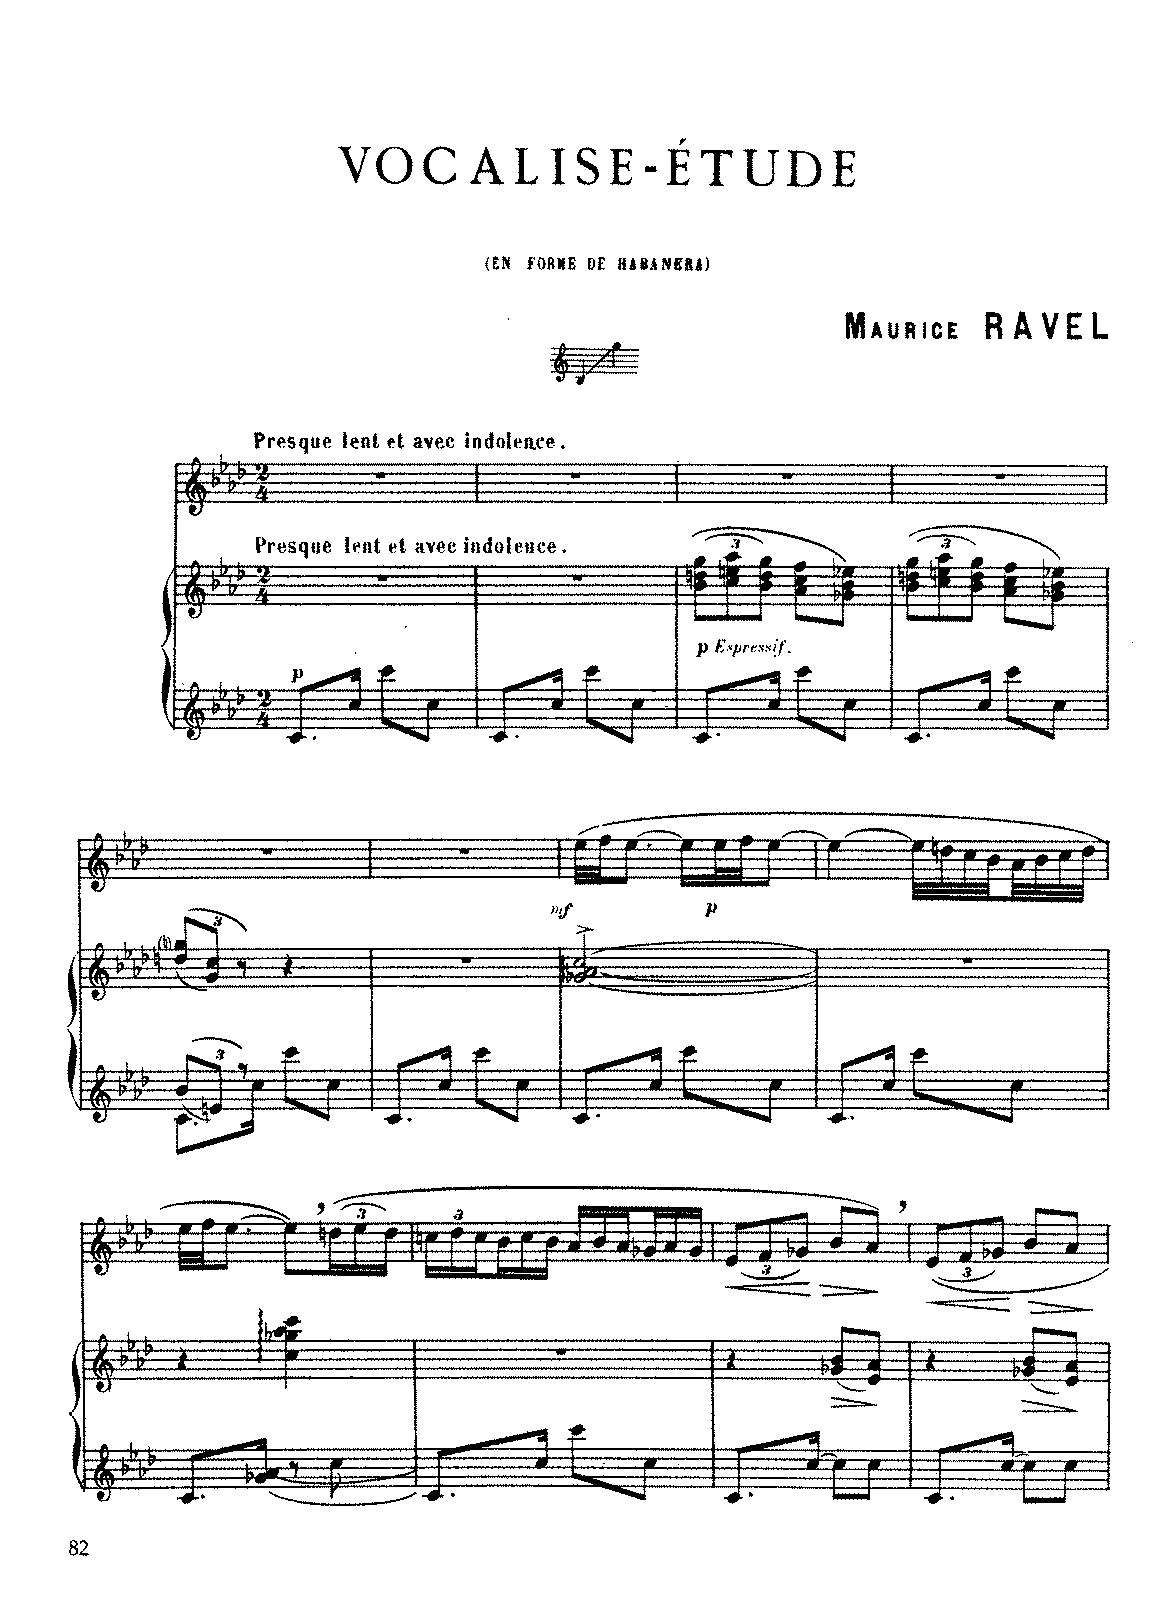 Ravel - Vocalise-Étude en forme de Habanera (voice and piano).pdf